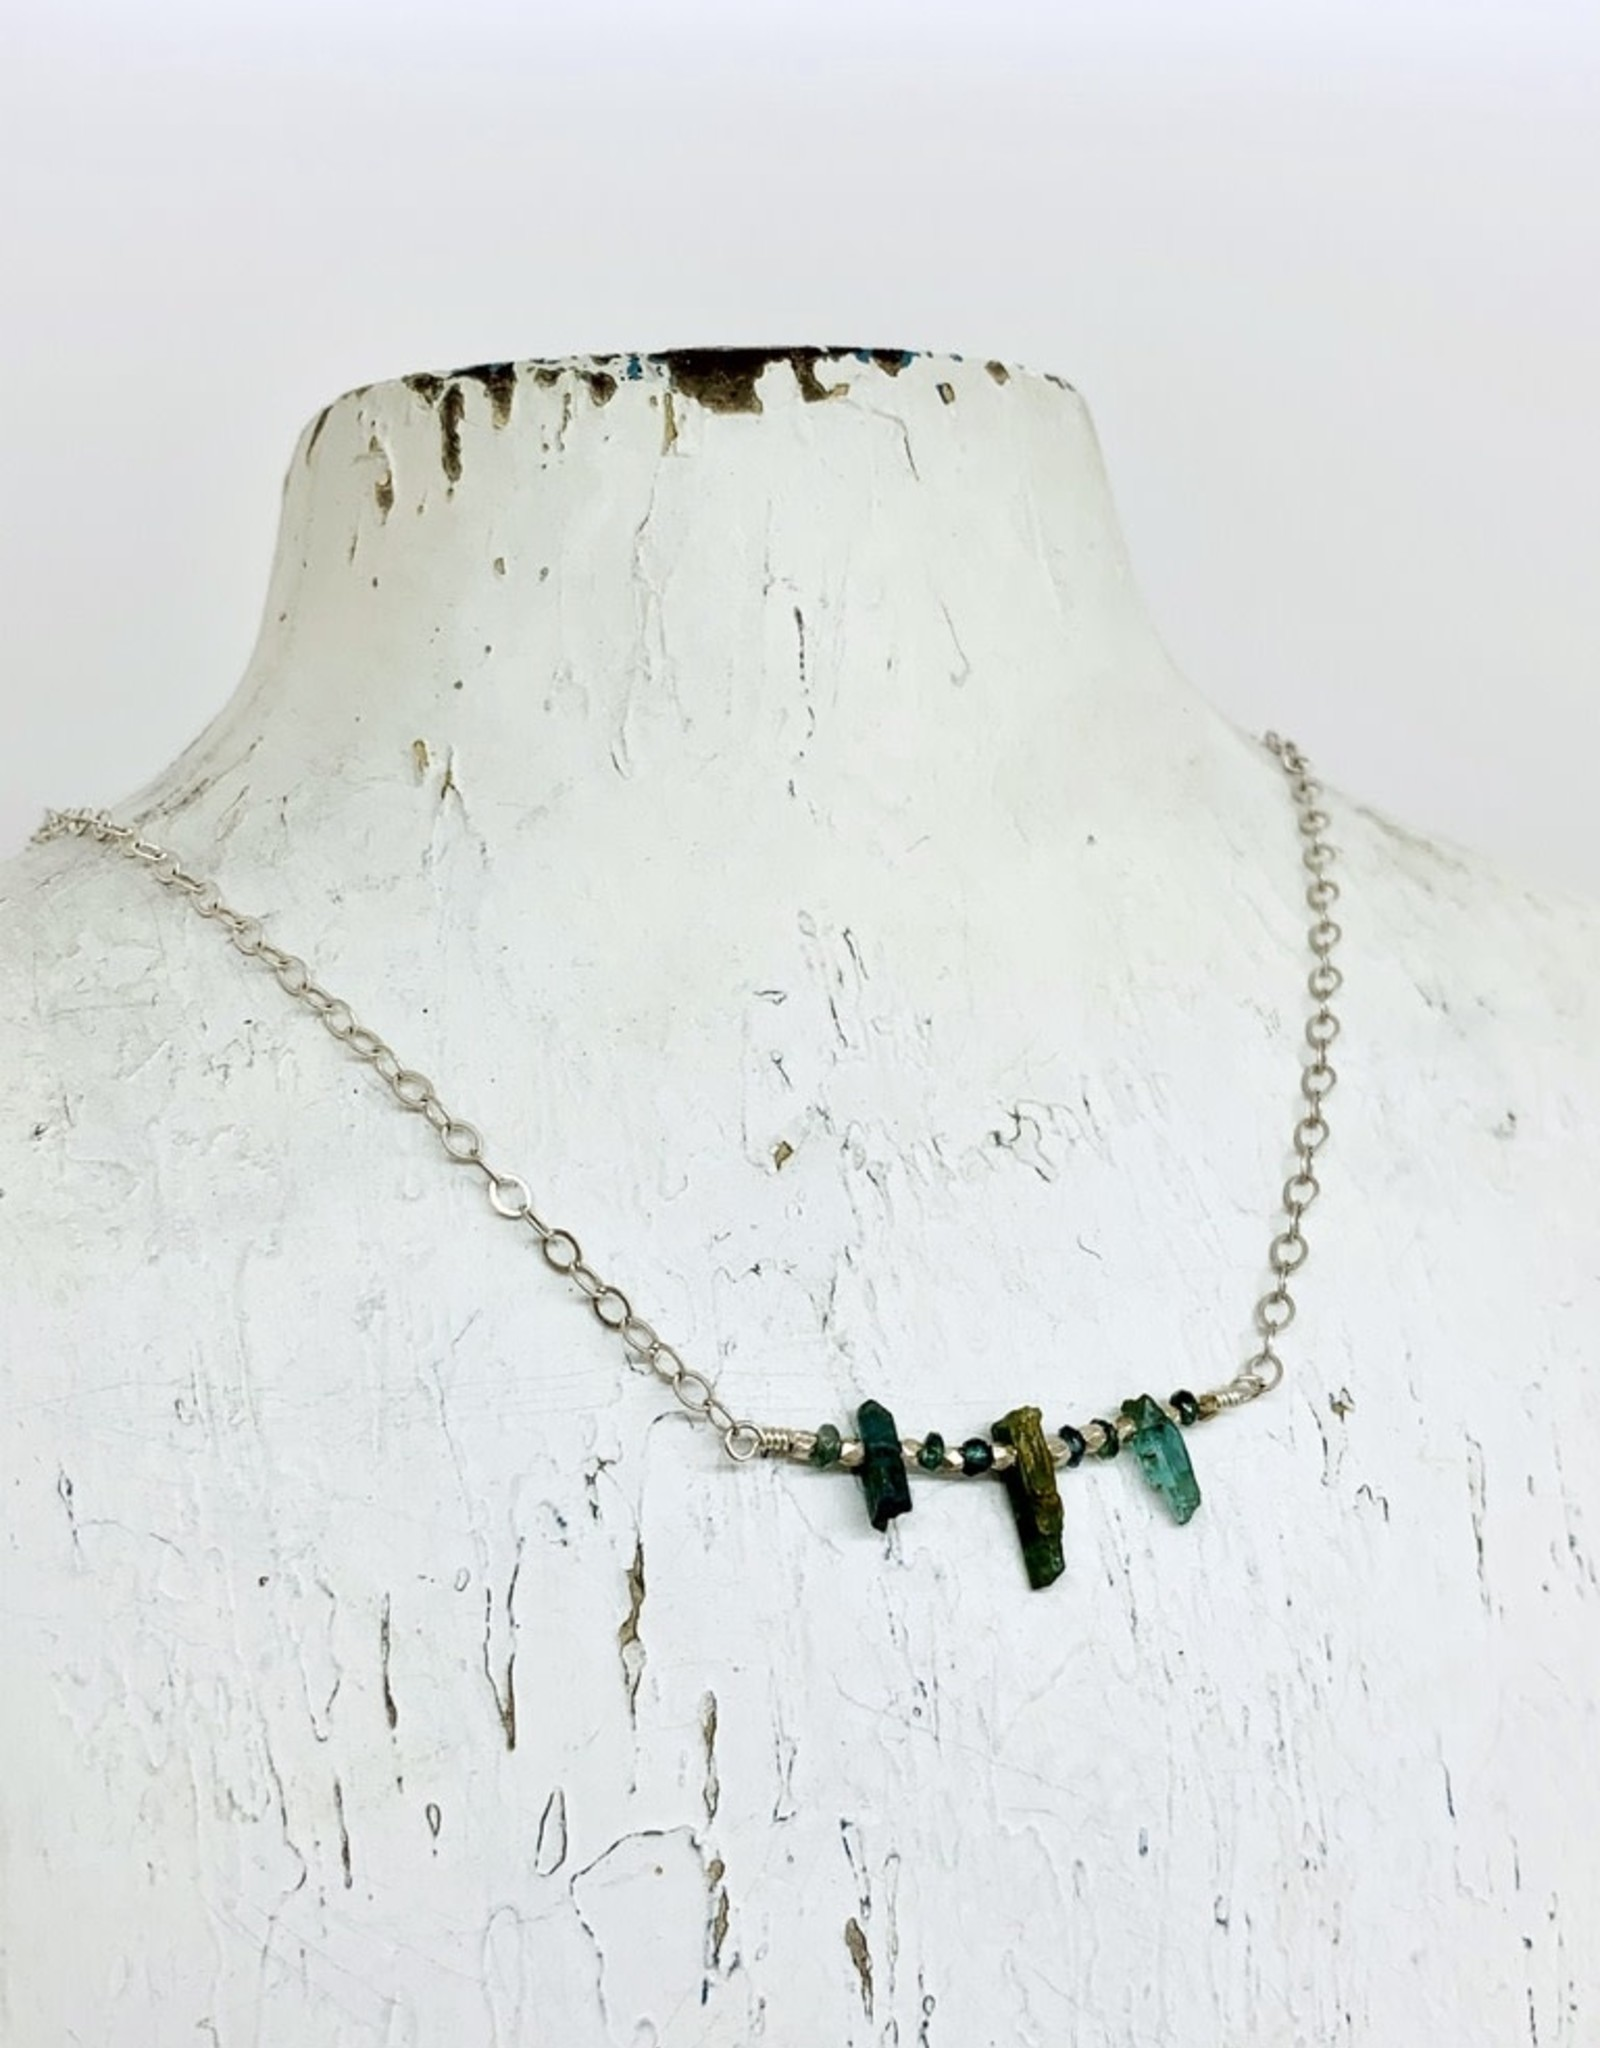 Handmade Silver Necklace with 3 green tourmaline, rondelles, faceted silver bar across, silver